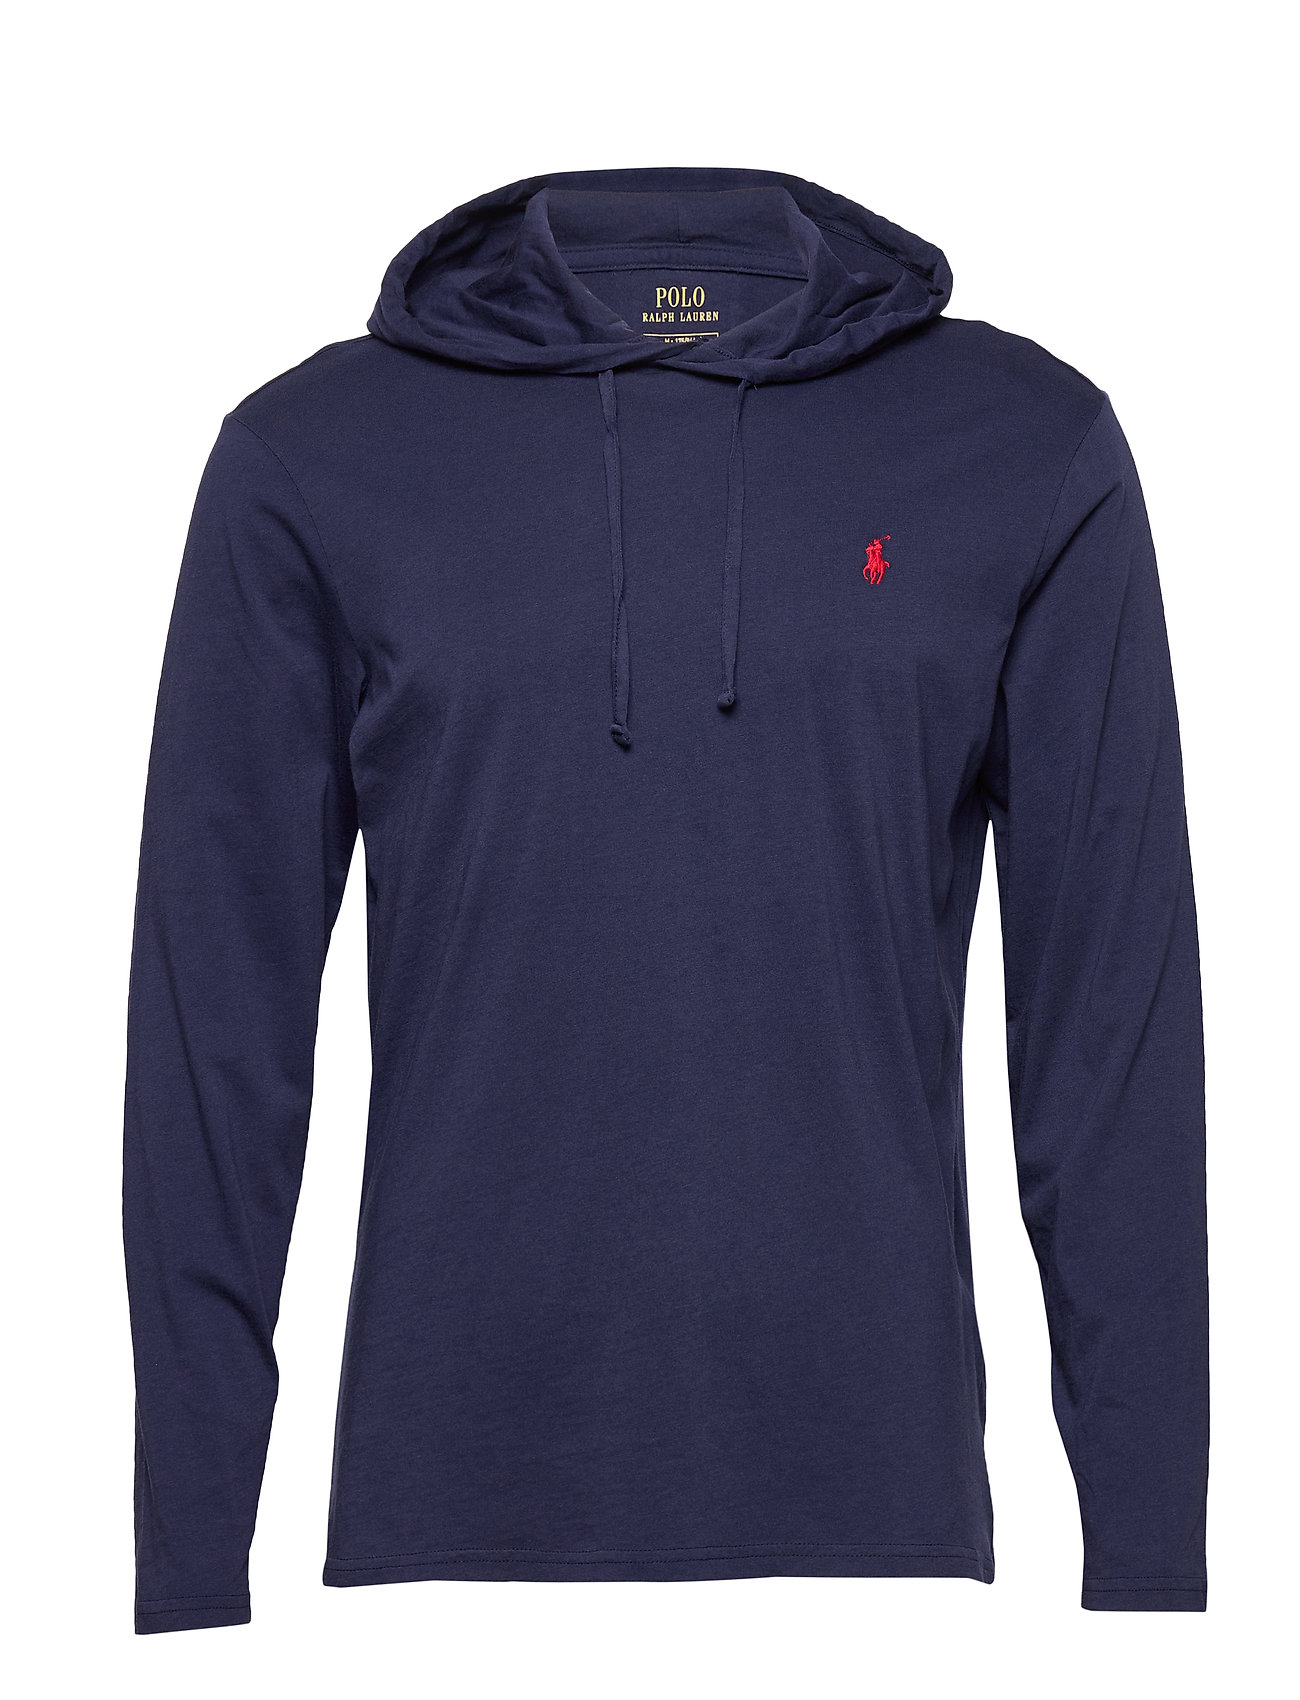 Polo Ralph Lauren Cotton Jersey Hooded T-Shirt - NEWPORT NAVY